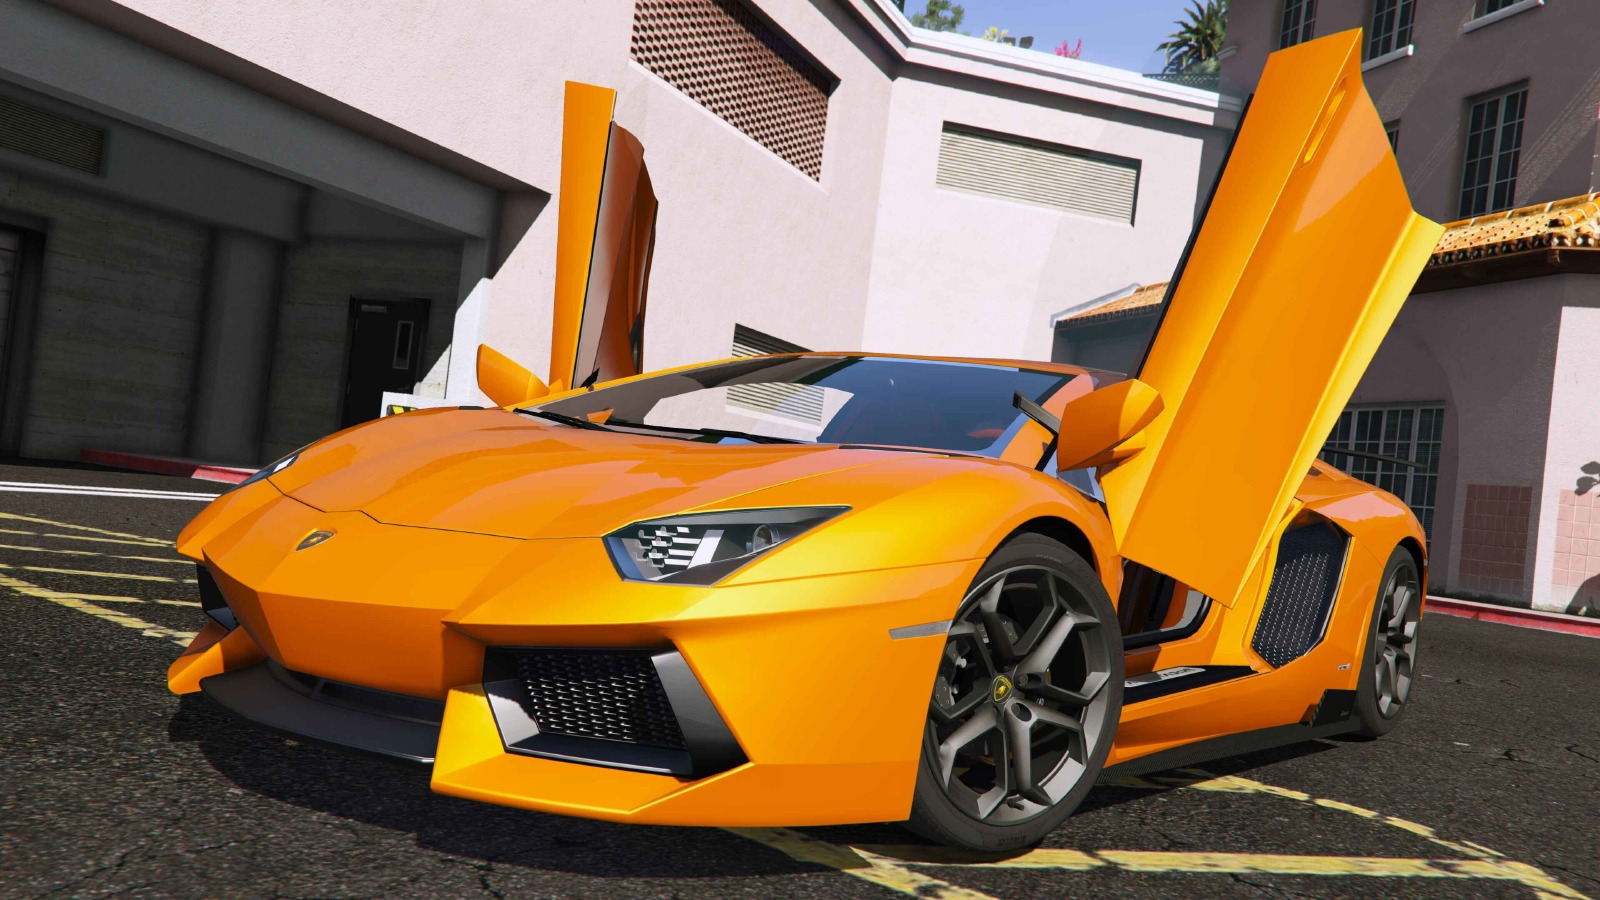 lamborghini aventador lp700 4 vehicules pour gta v sur gta modding. Black Bedroom Furniture Sets. Home Design Ideas